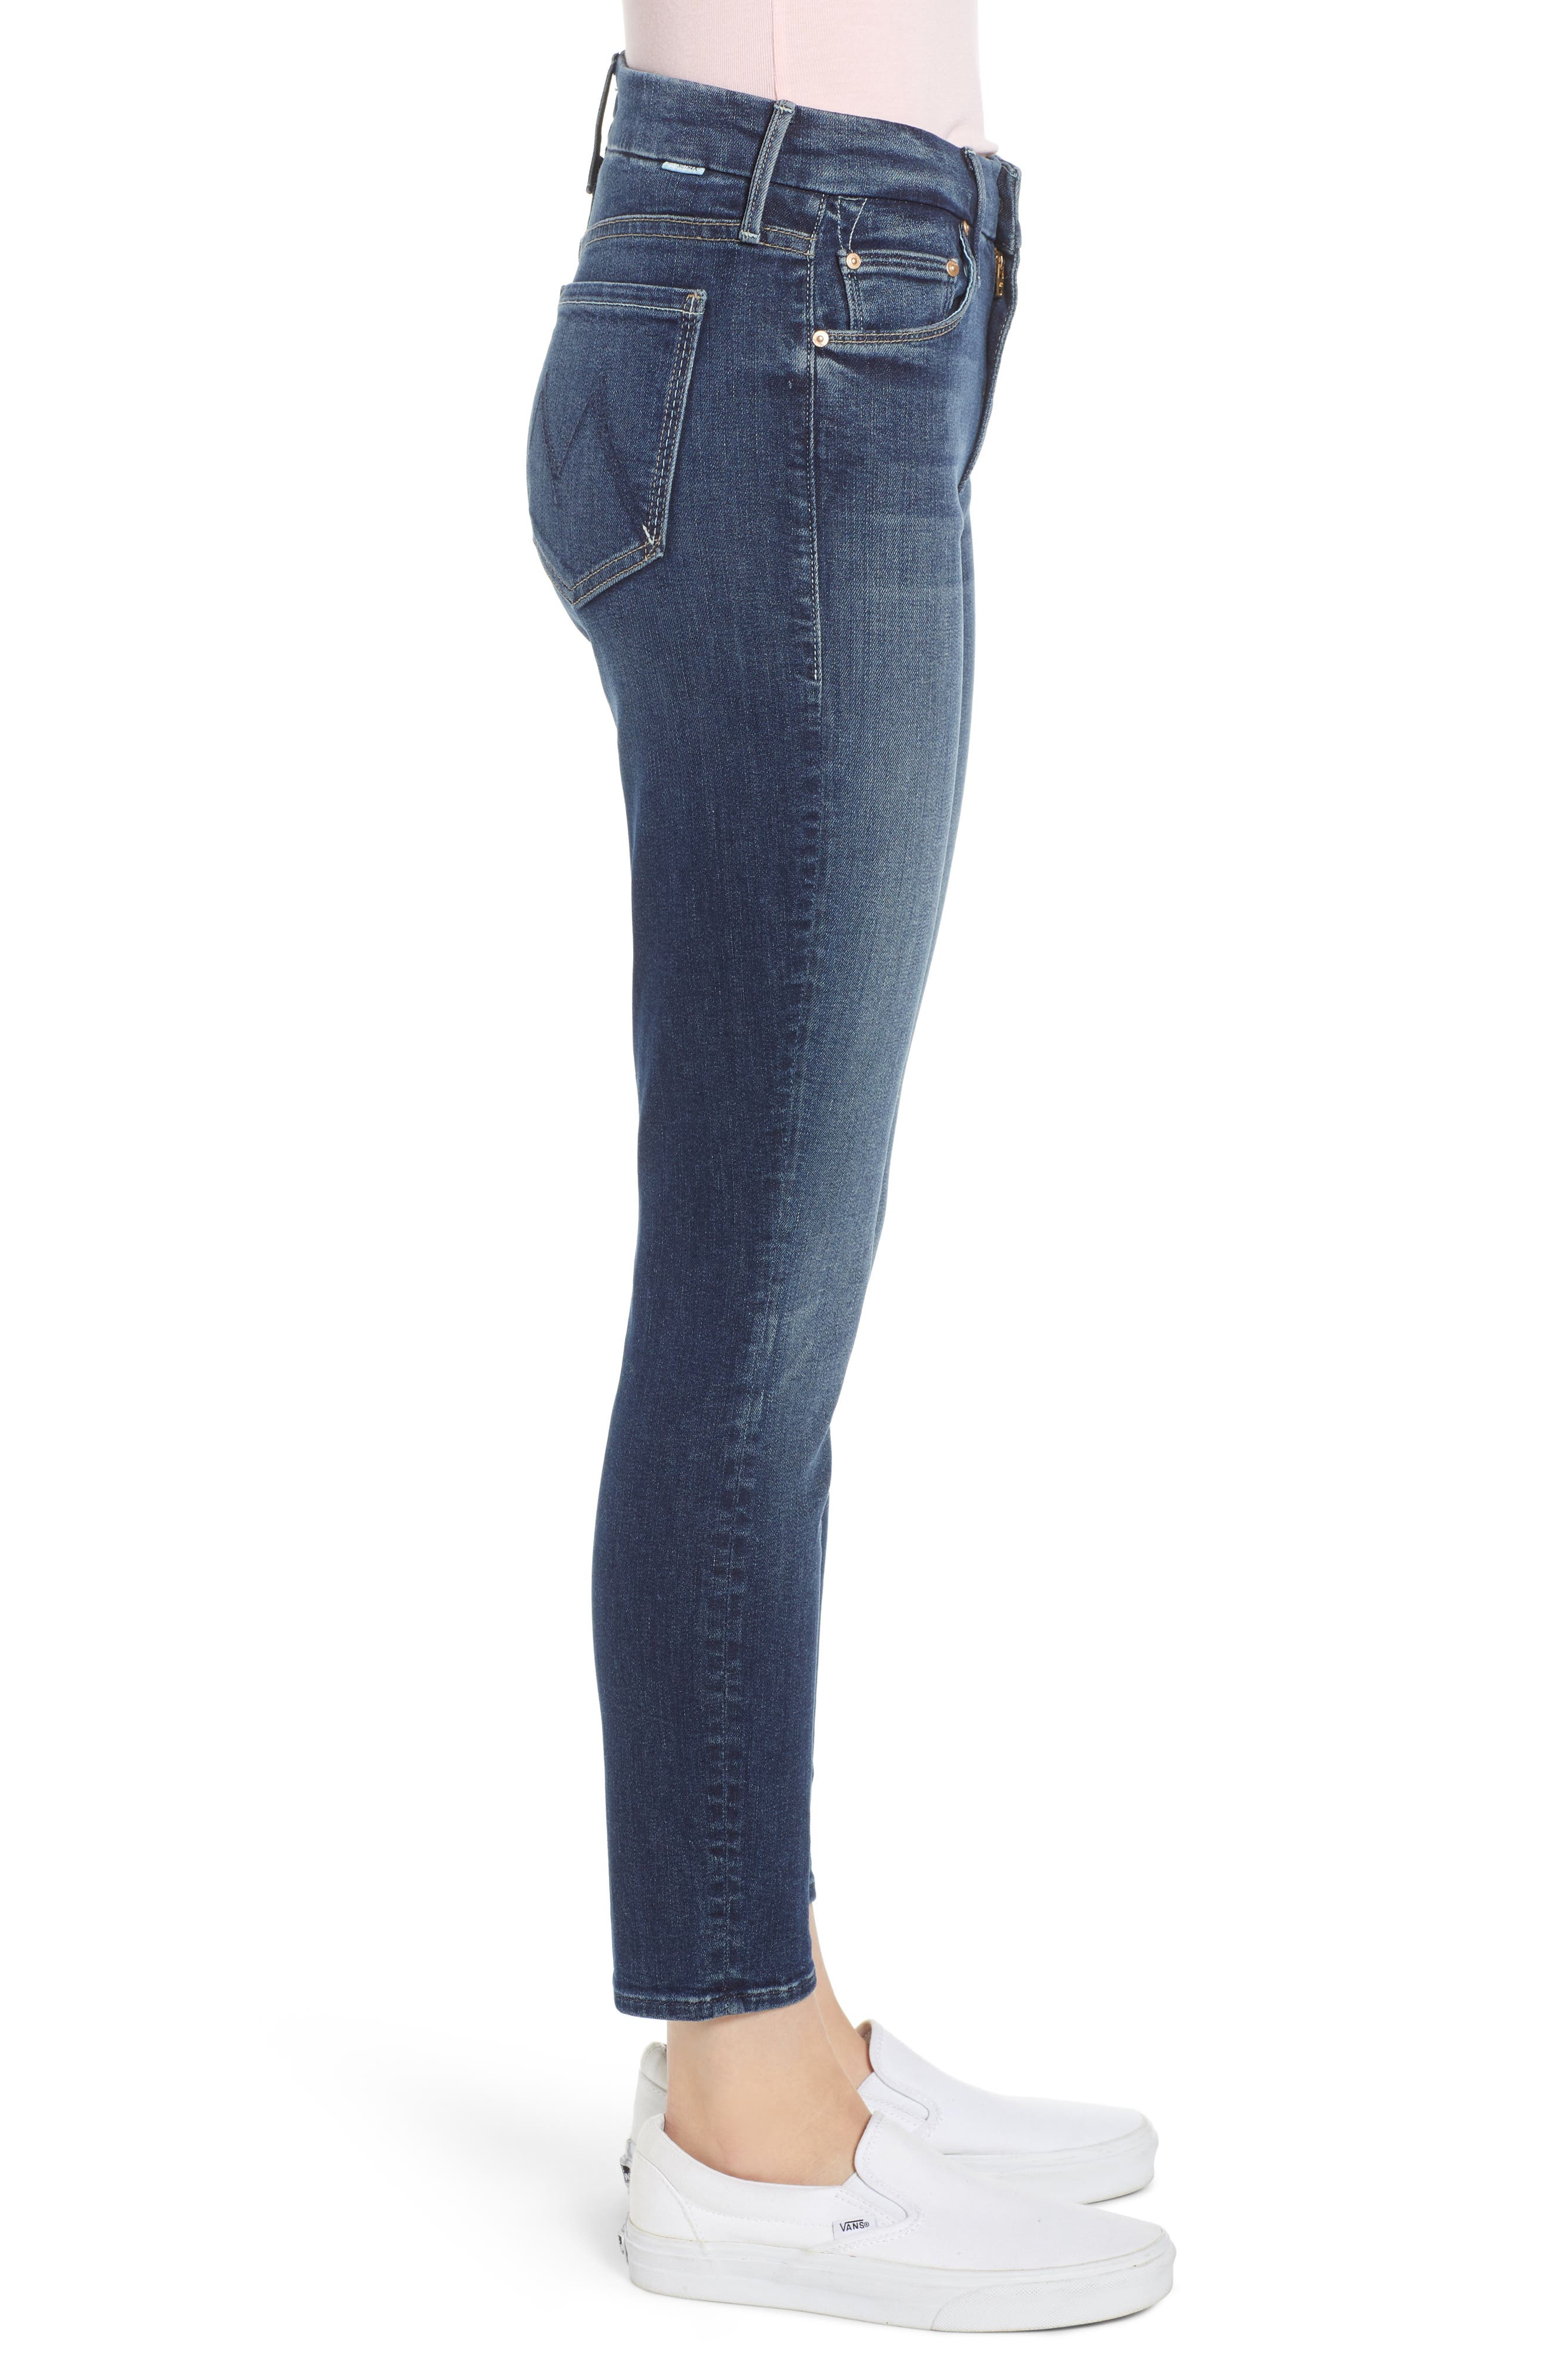 MOTHER, 'The Looker' Crop Skinny Jeans, Alternate thumbnail 4, color, ON THE EDGE